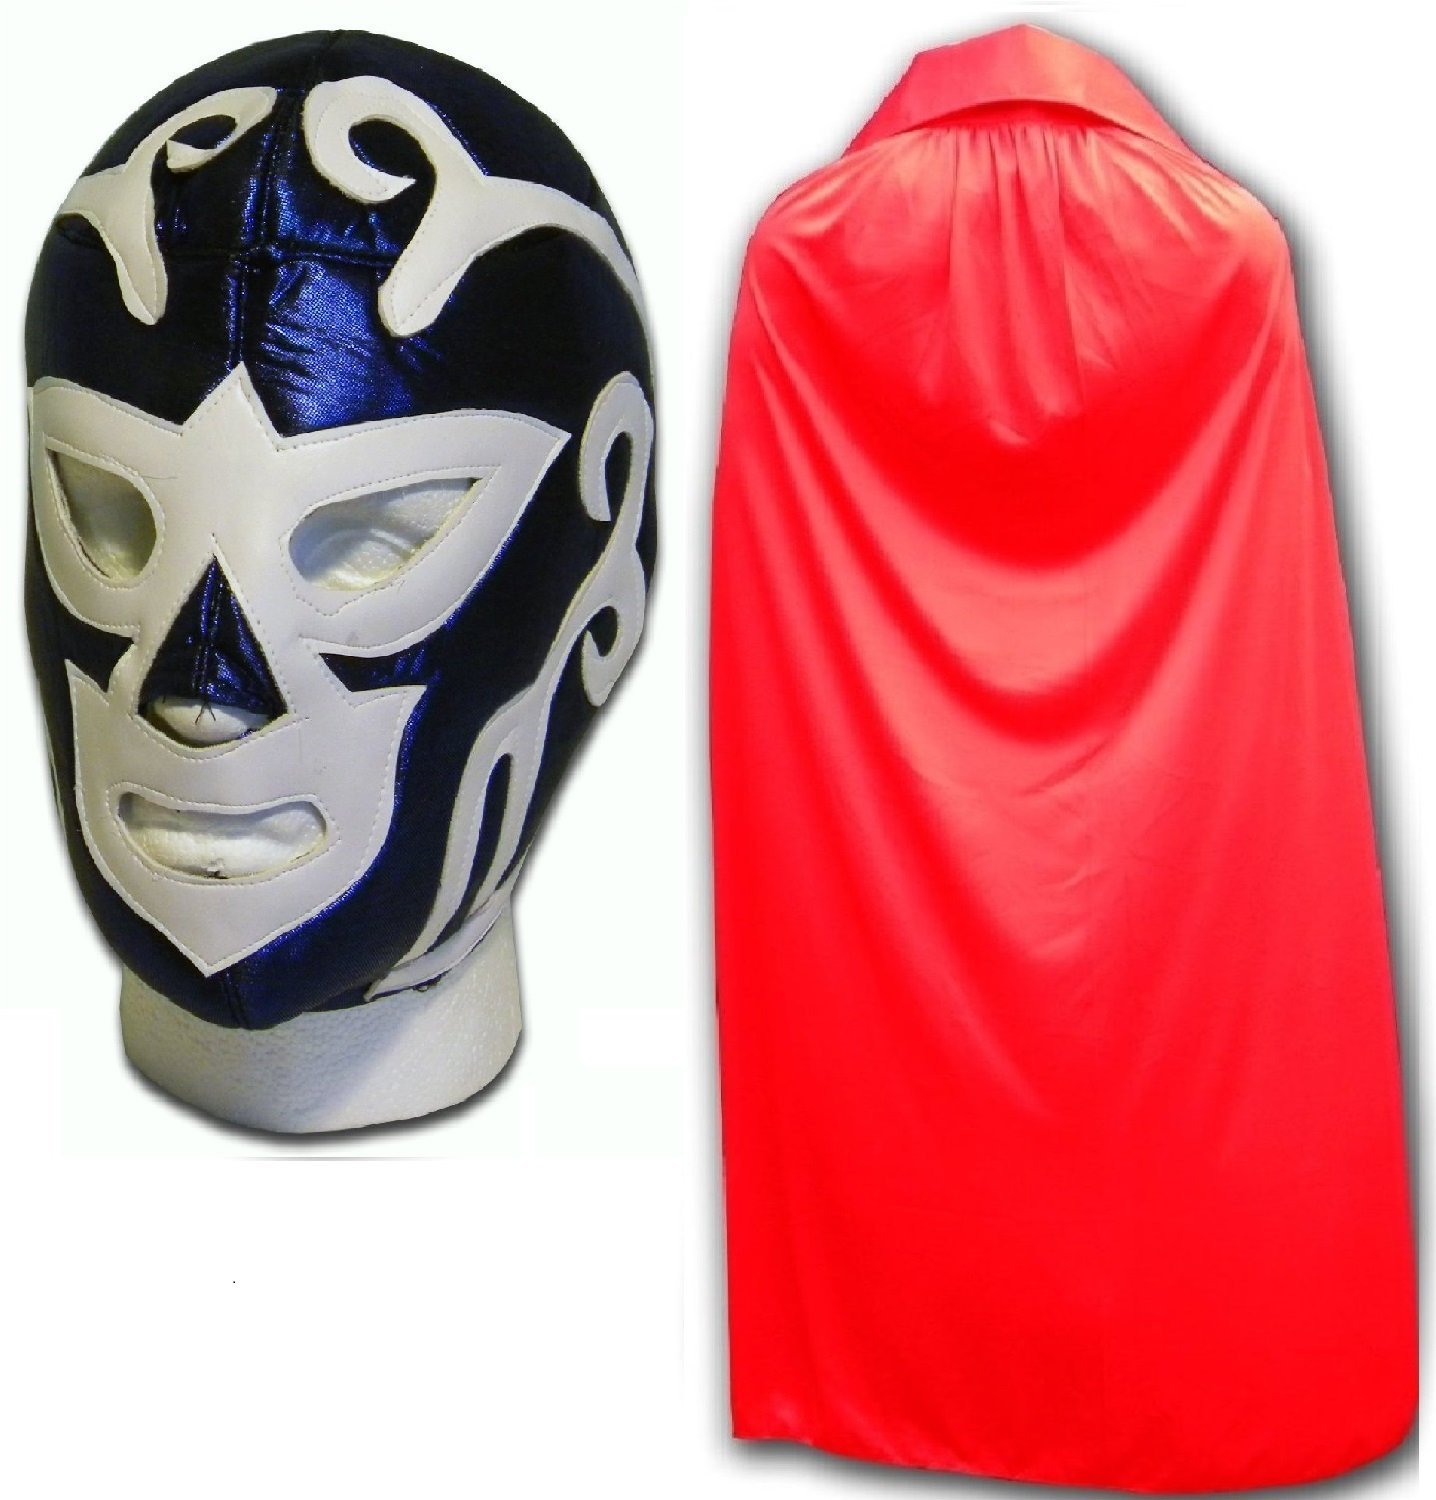 WRESTLING MASKS UK Men's Huracan Luchador Mexican Wrestling Mask With Cape One Size Blue/ Red